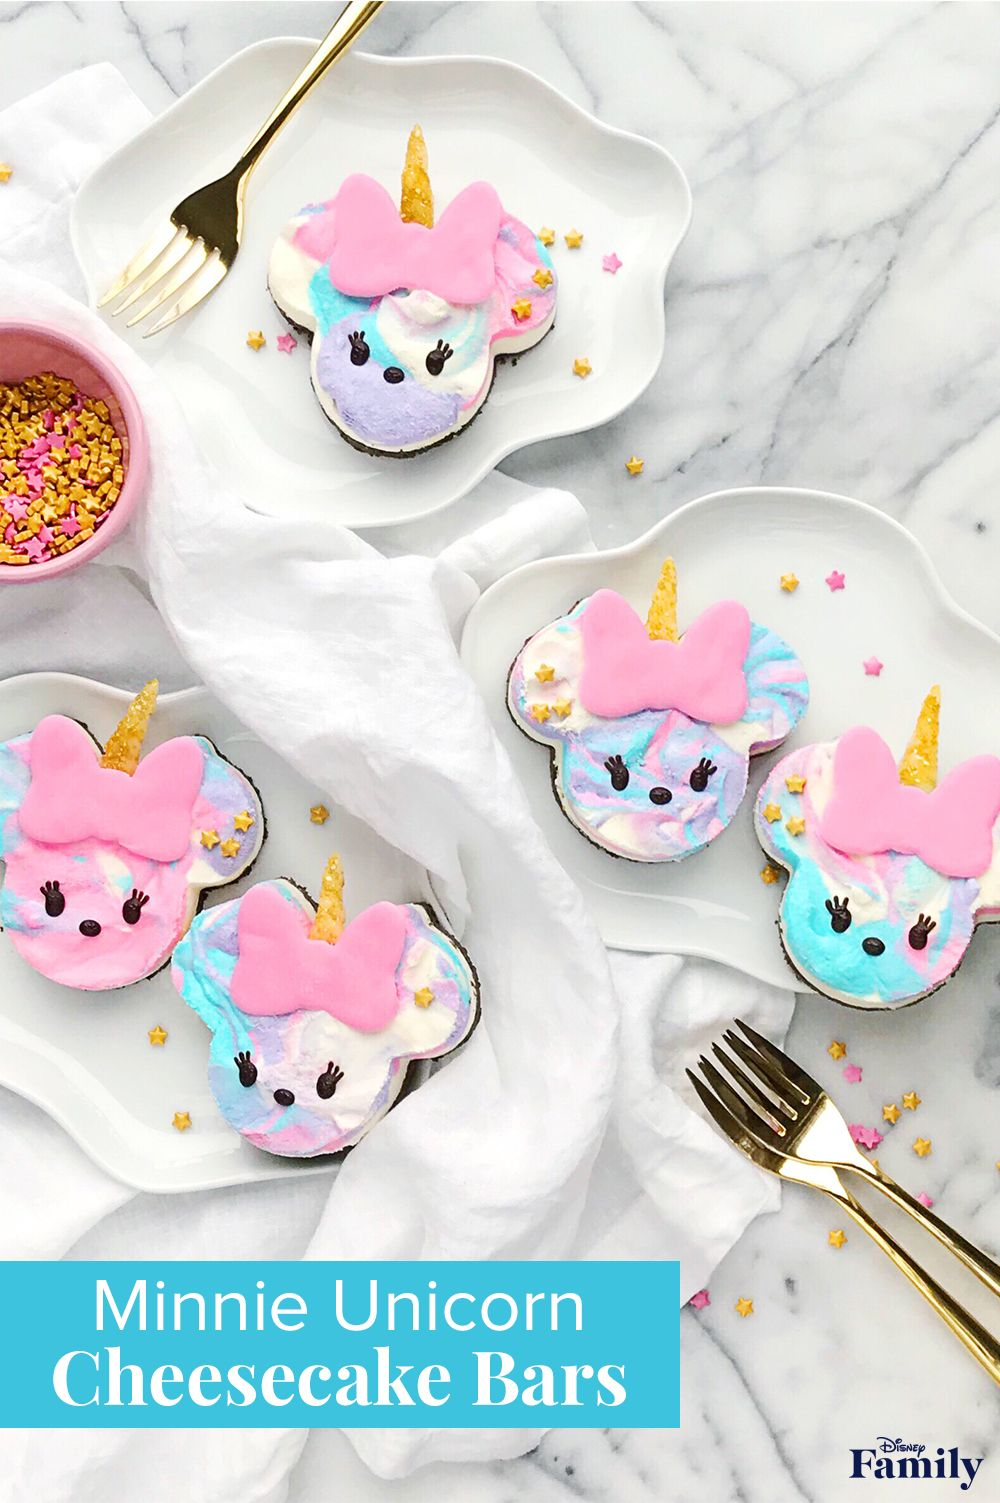 No-bake Minnie Unicorn Cheesecake Bars are a magically delicious treat that are as simple as they are sweet. They only take a few minutes to put together and can be made ahead. Click to see the tasty Minnie recipe.